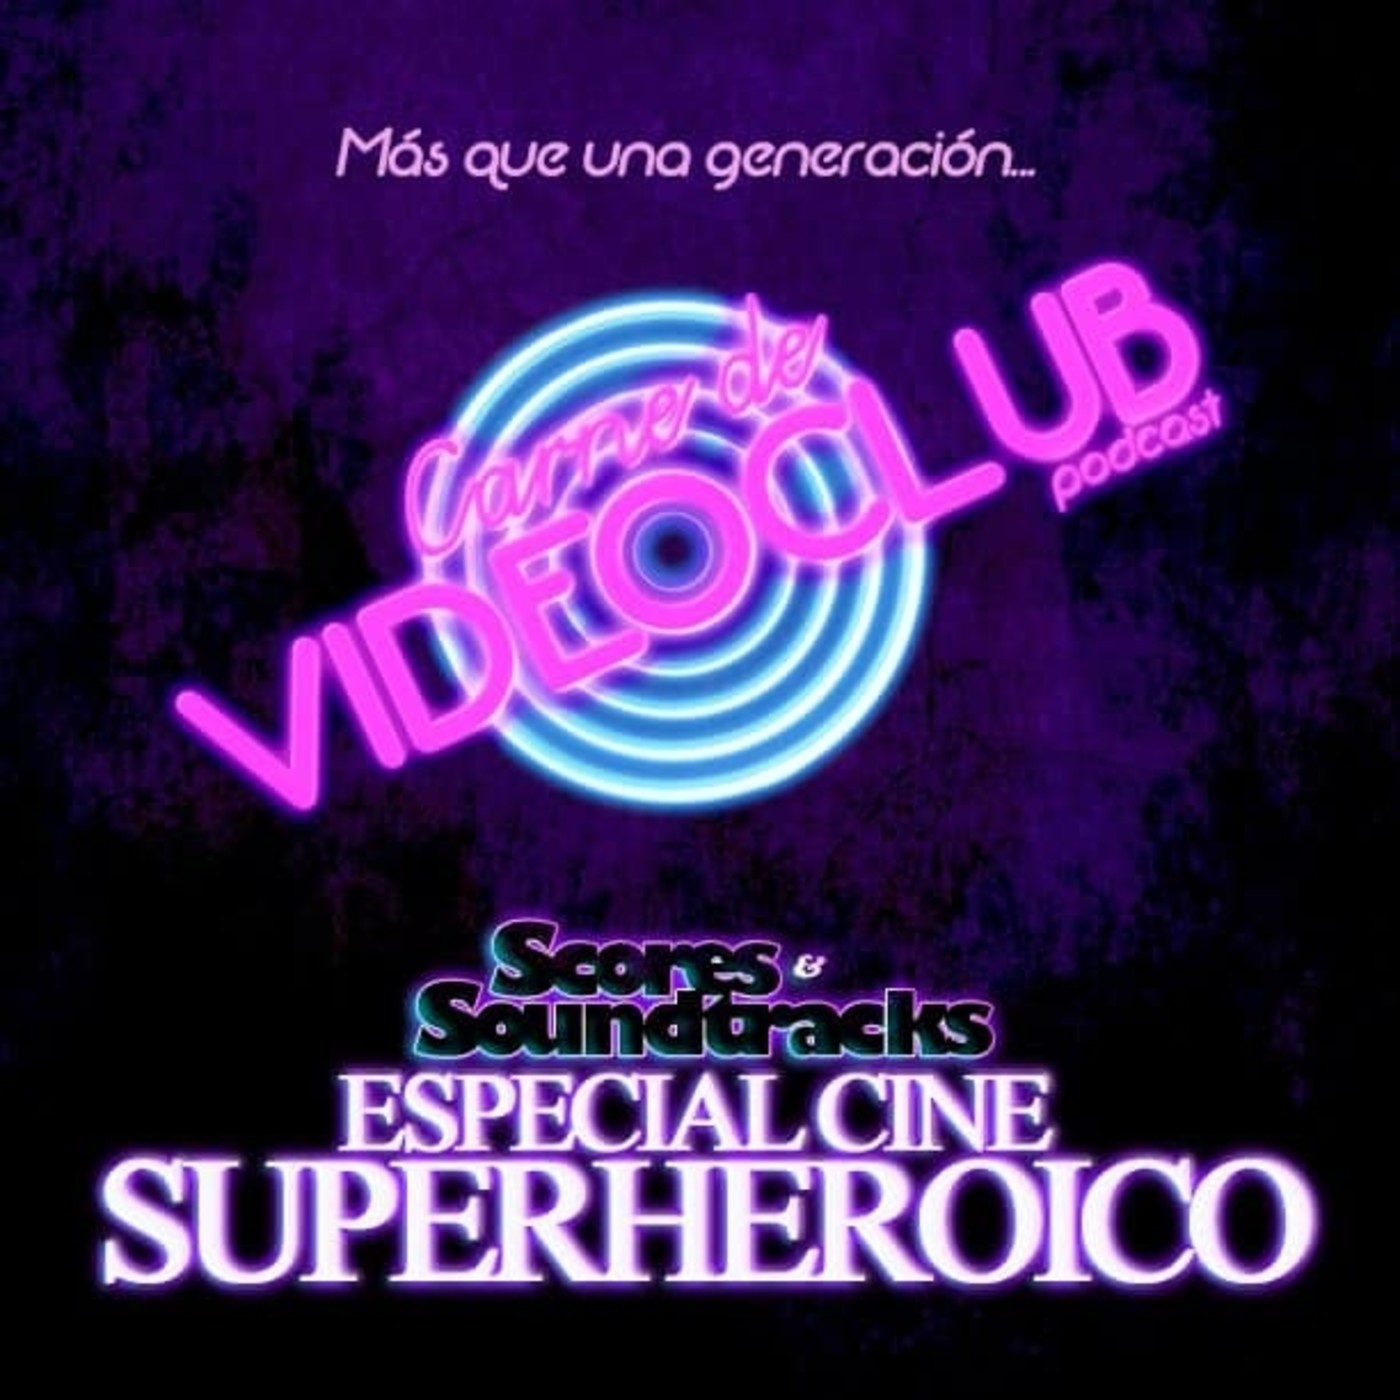 Carne de Videoclub - Episodio 131.5 - Especial Cine Superheroico (Soundtracks & Scores vol 18)